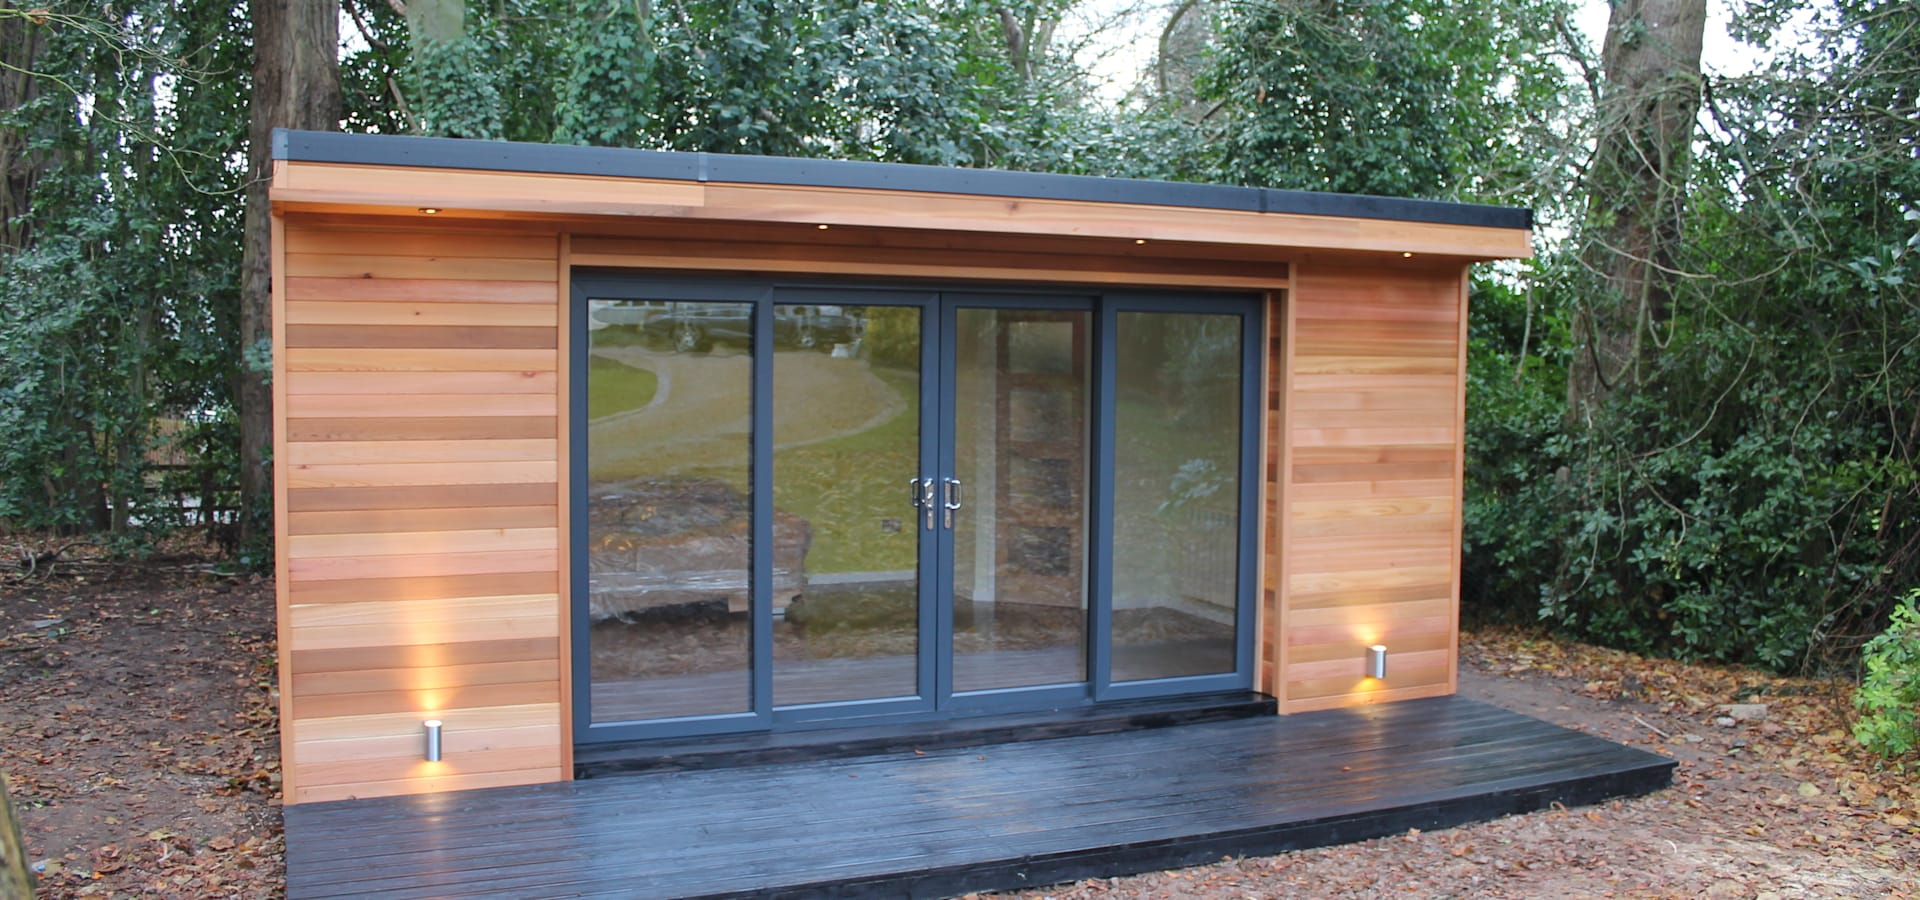 home office garden building. Crusoe Garden Rooms Limited Home Office Building G